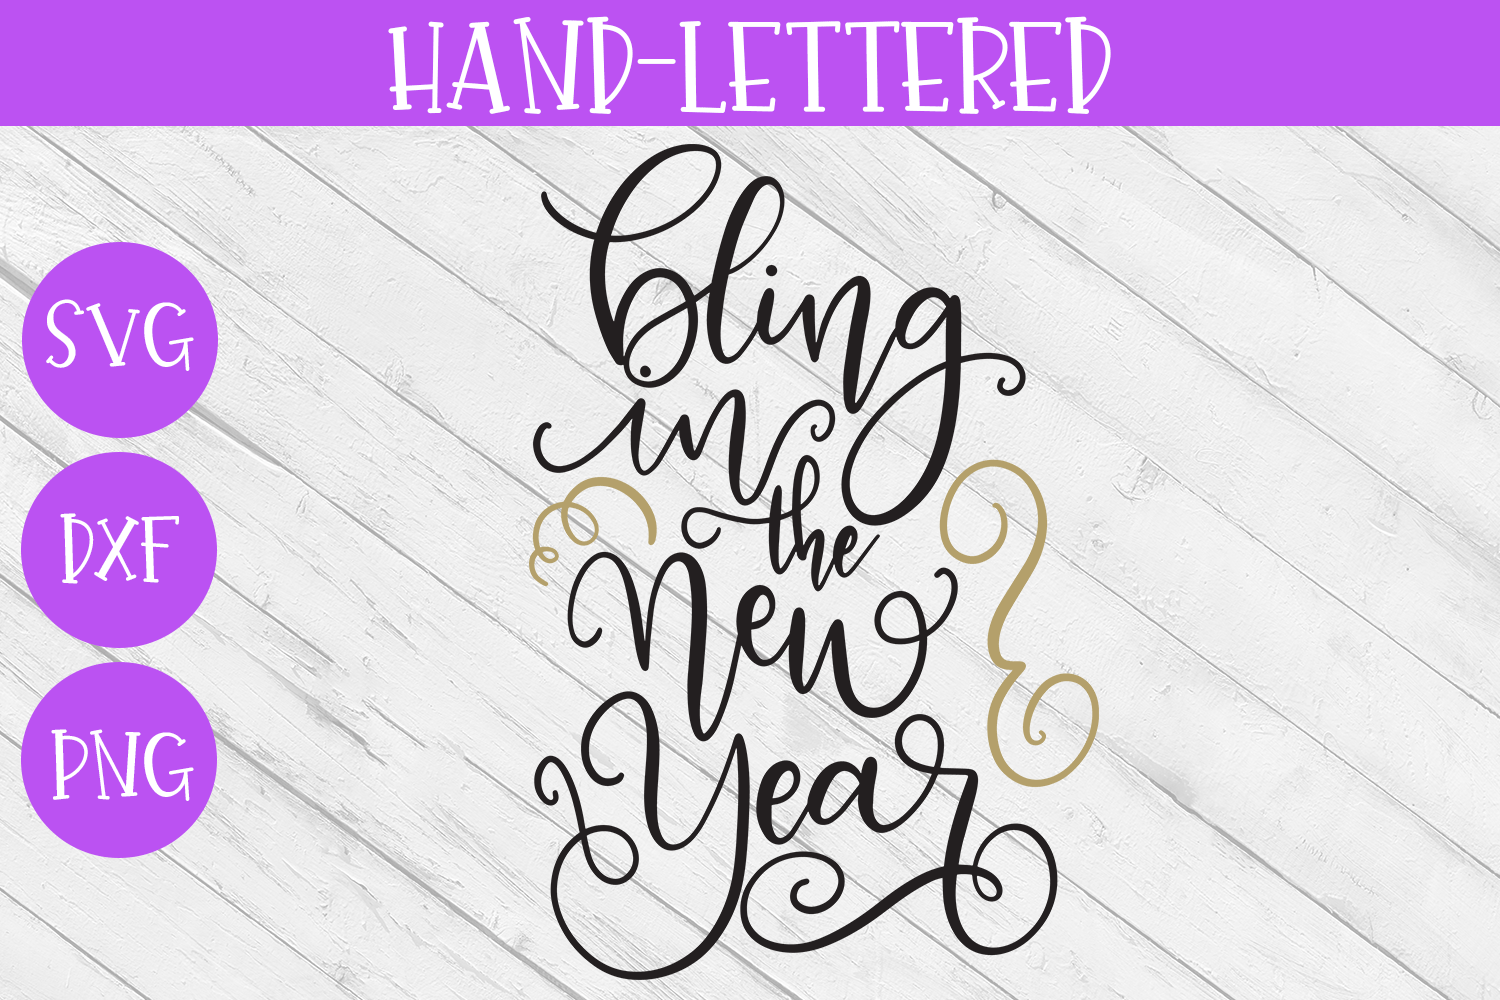 New Year SVG - Bling in the New Year Hand-Lettered Cut File example image 2